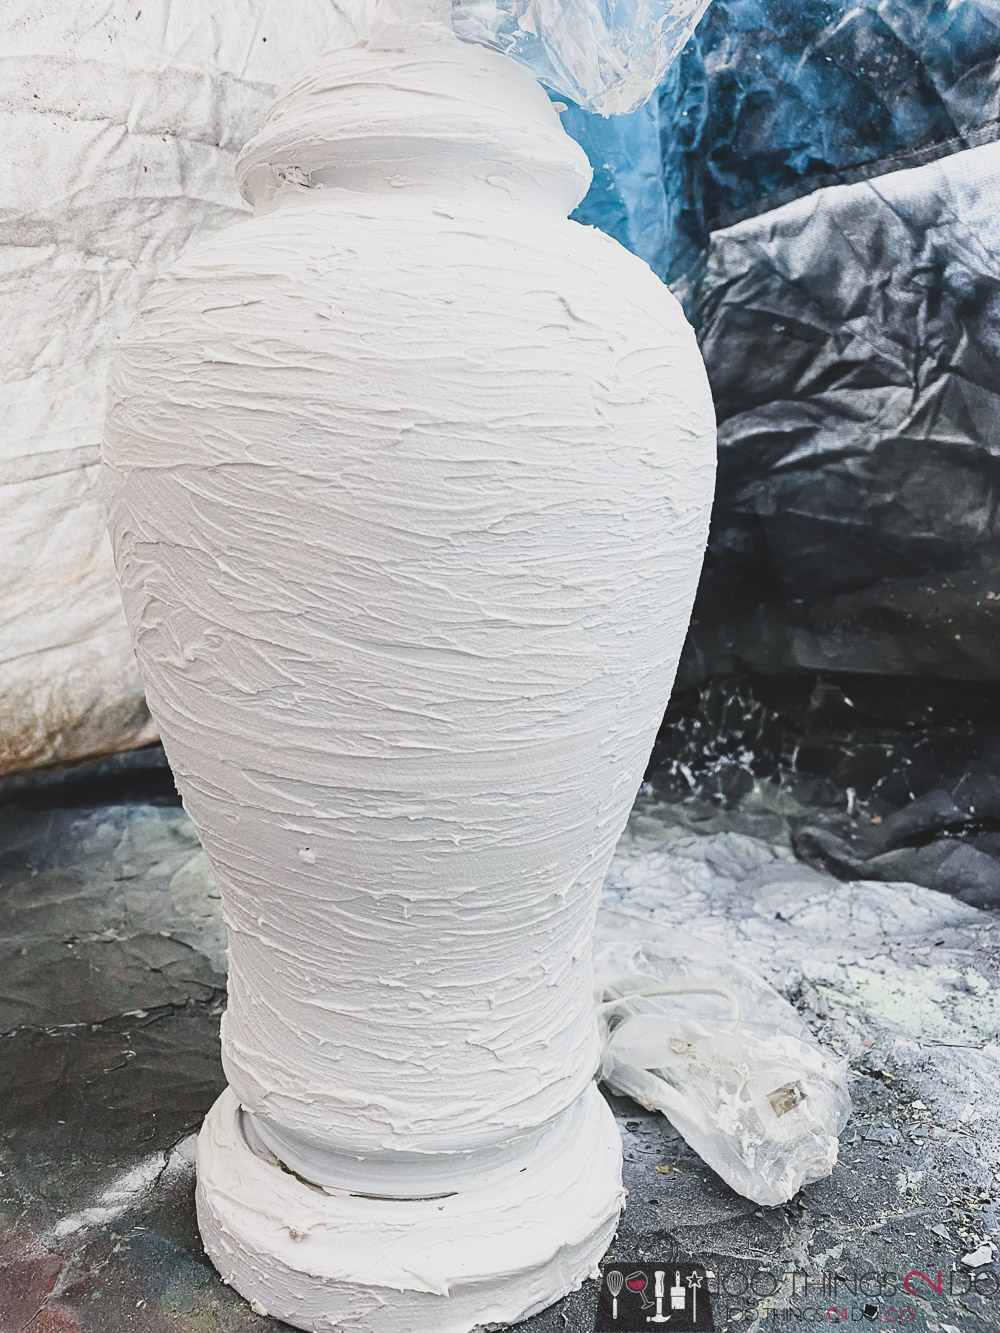 applying spackle to a lamp